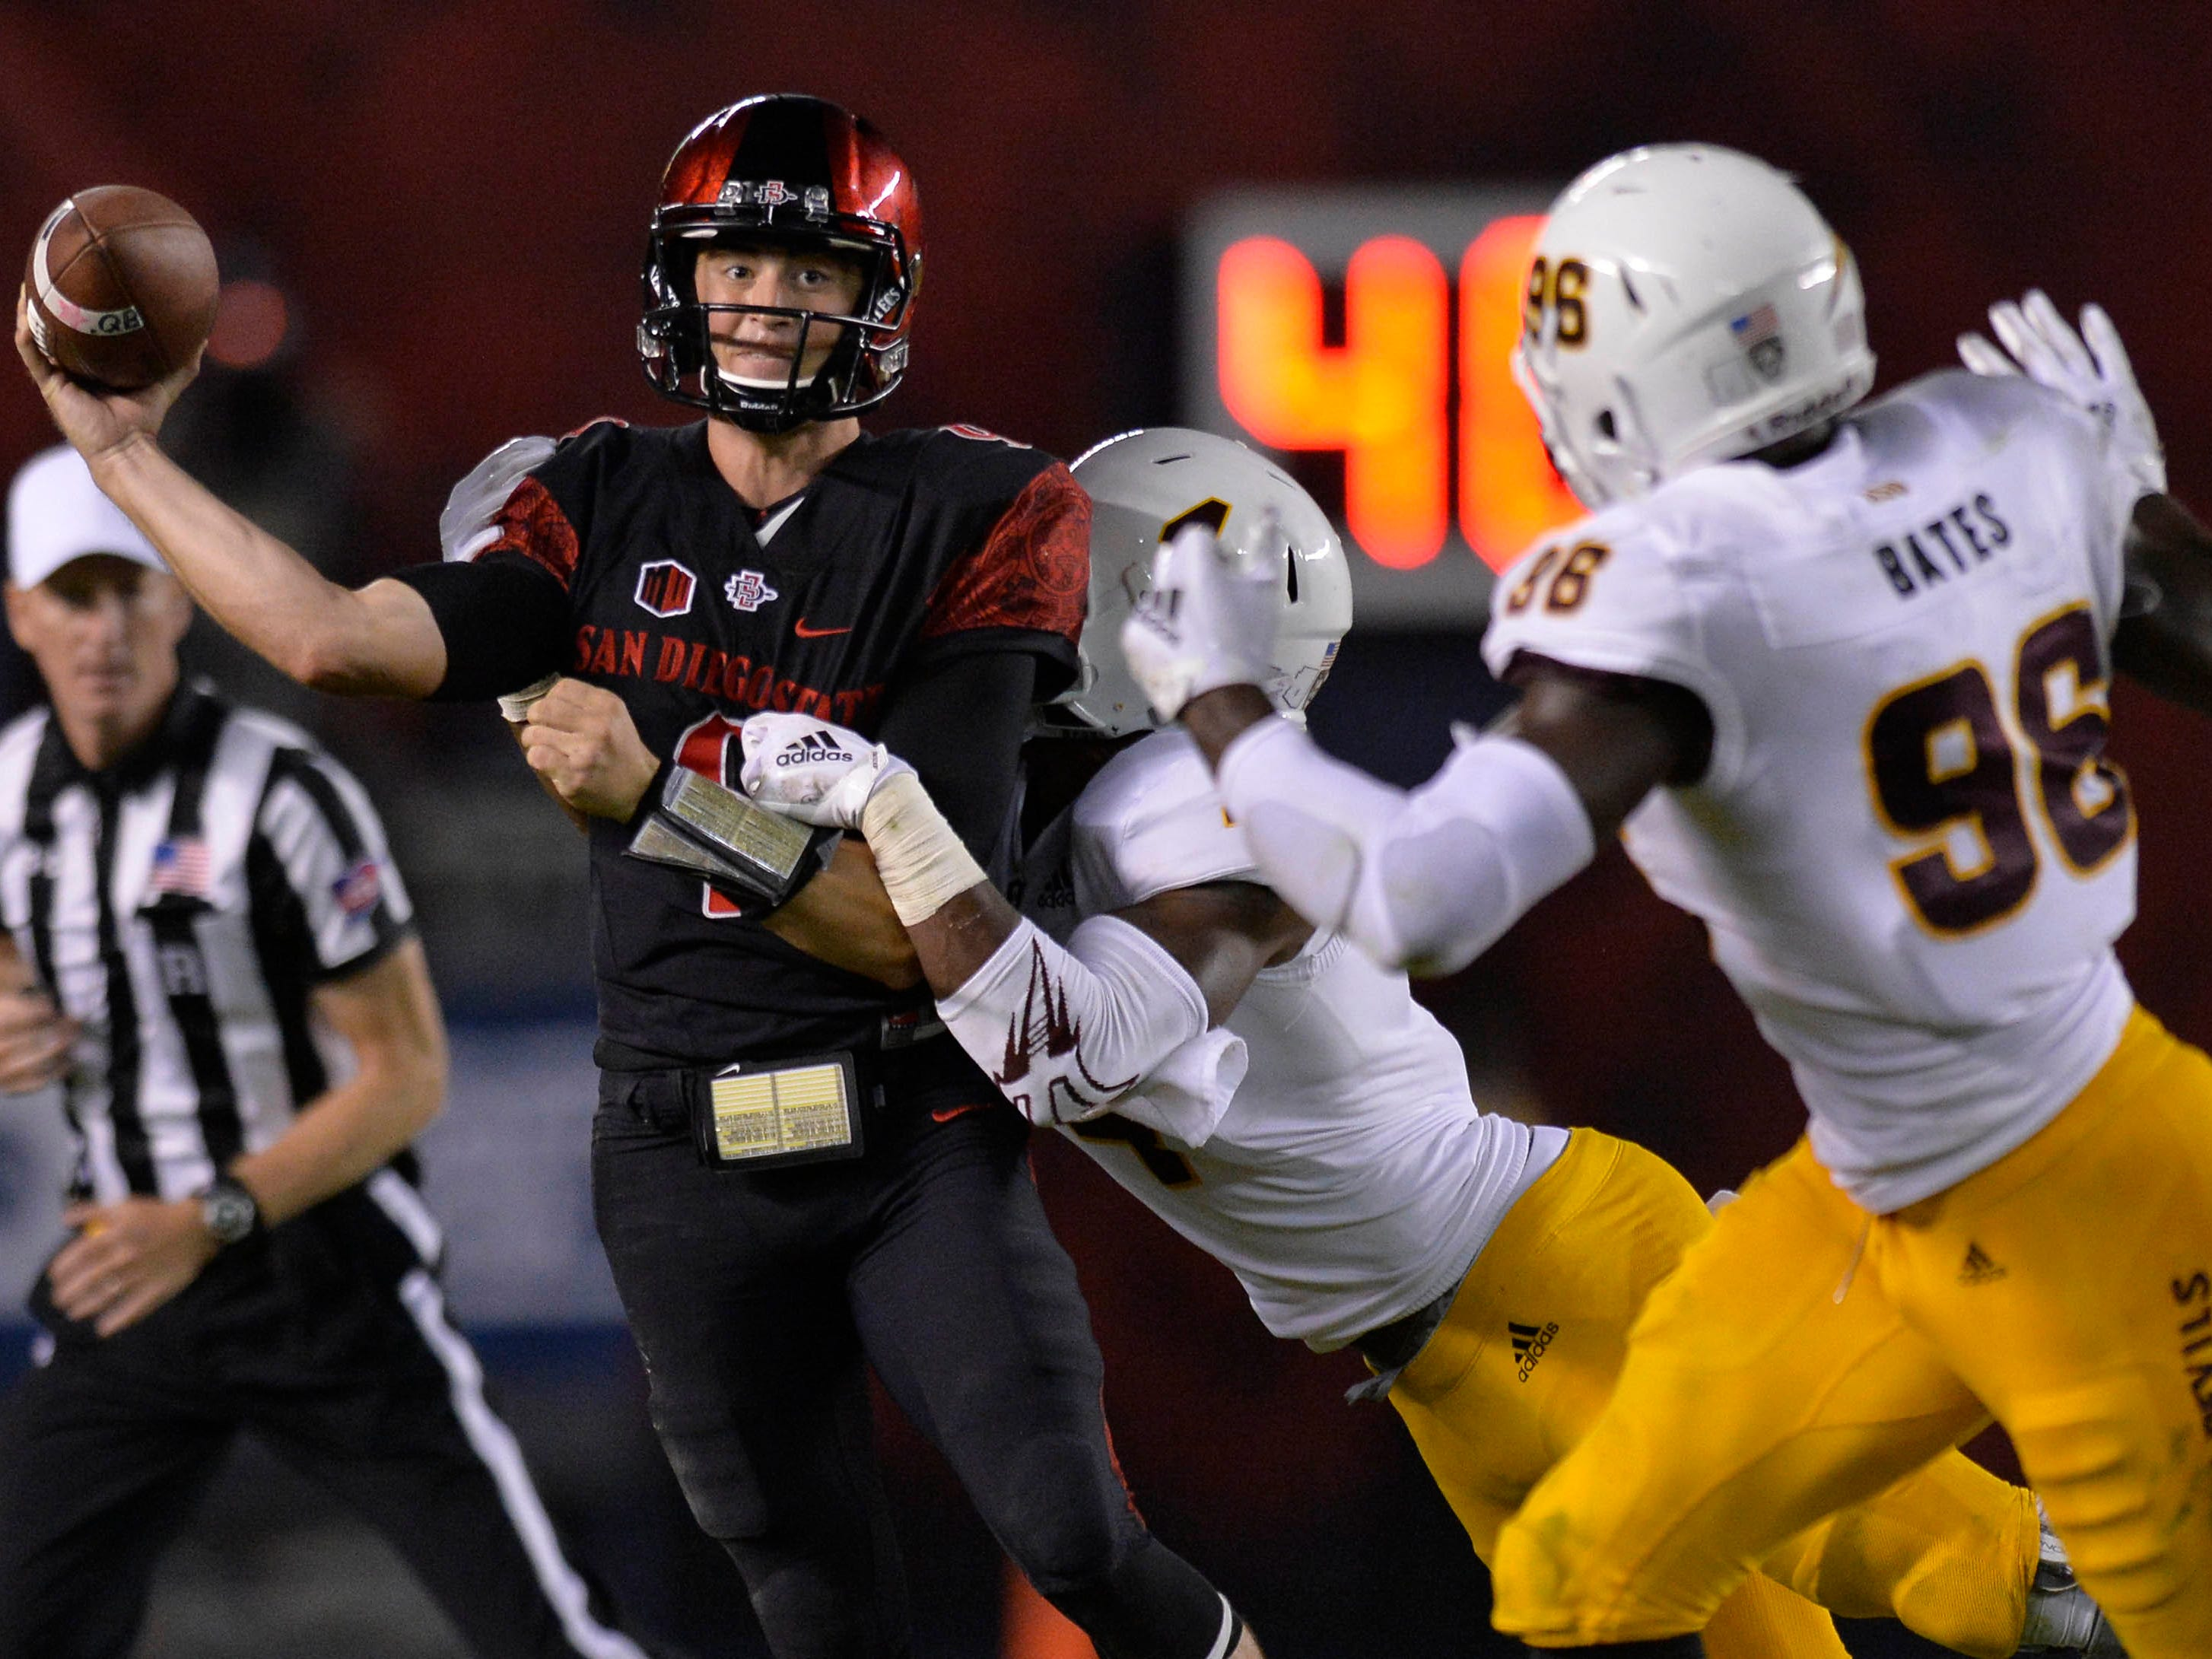 Sep 15, 2018; San Diego, CA, USA; San Diego State Aztecs quarterback Ryan Agnew (9) throws as Arizona State Sun Devils linebacker Koron Crump (4) pressures during the third quarter at SDCCU Stadium. Mandatory Credit: Jake Roth-USA TODAY Sports